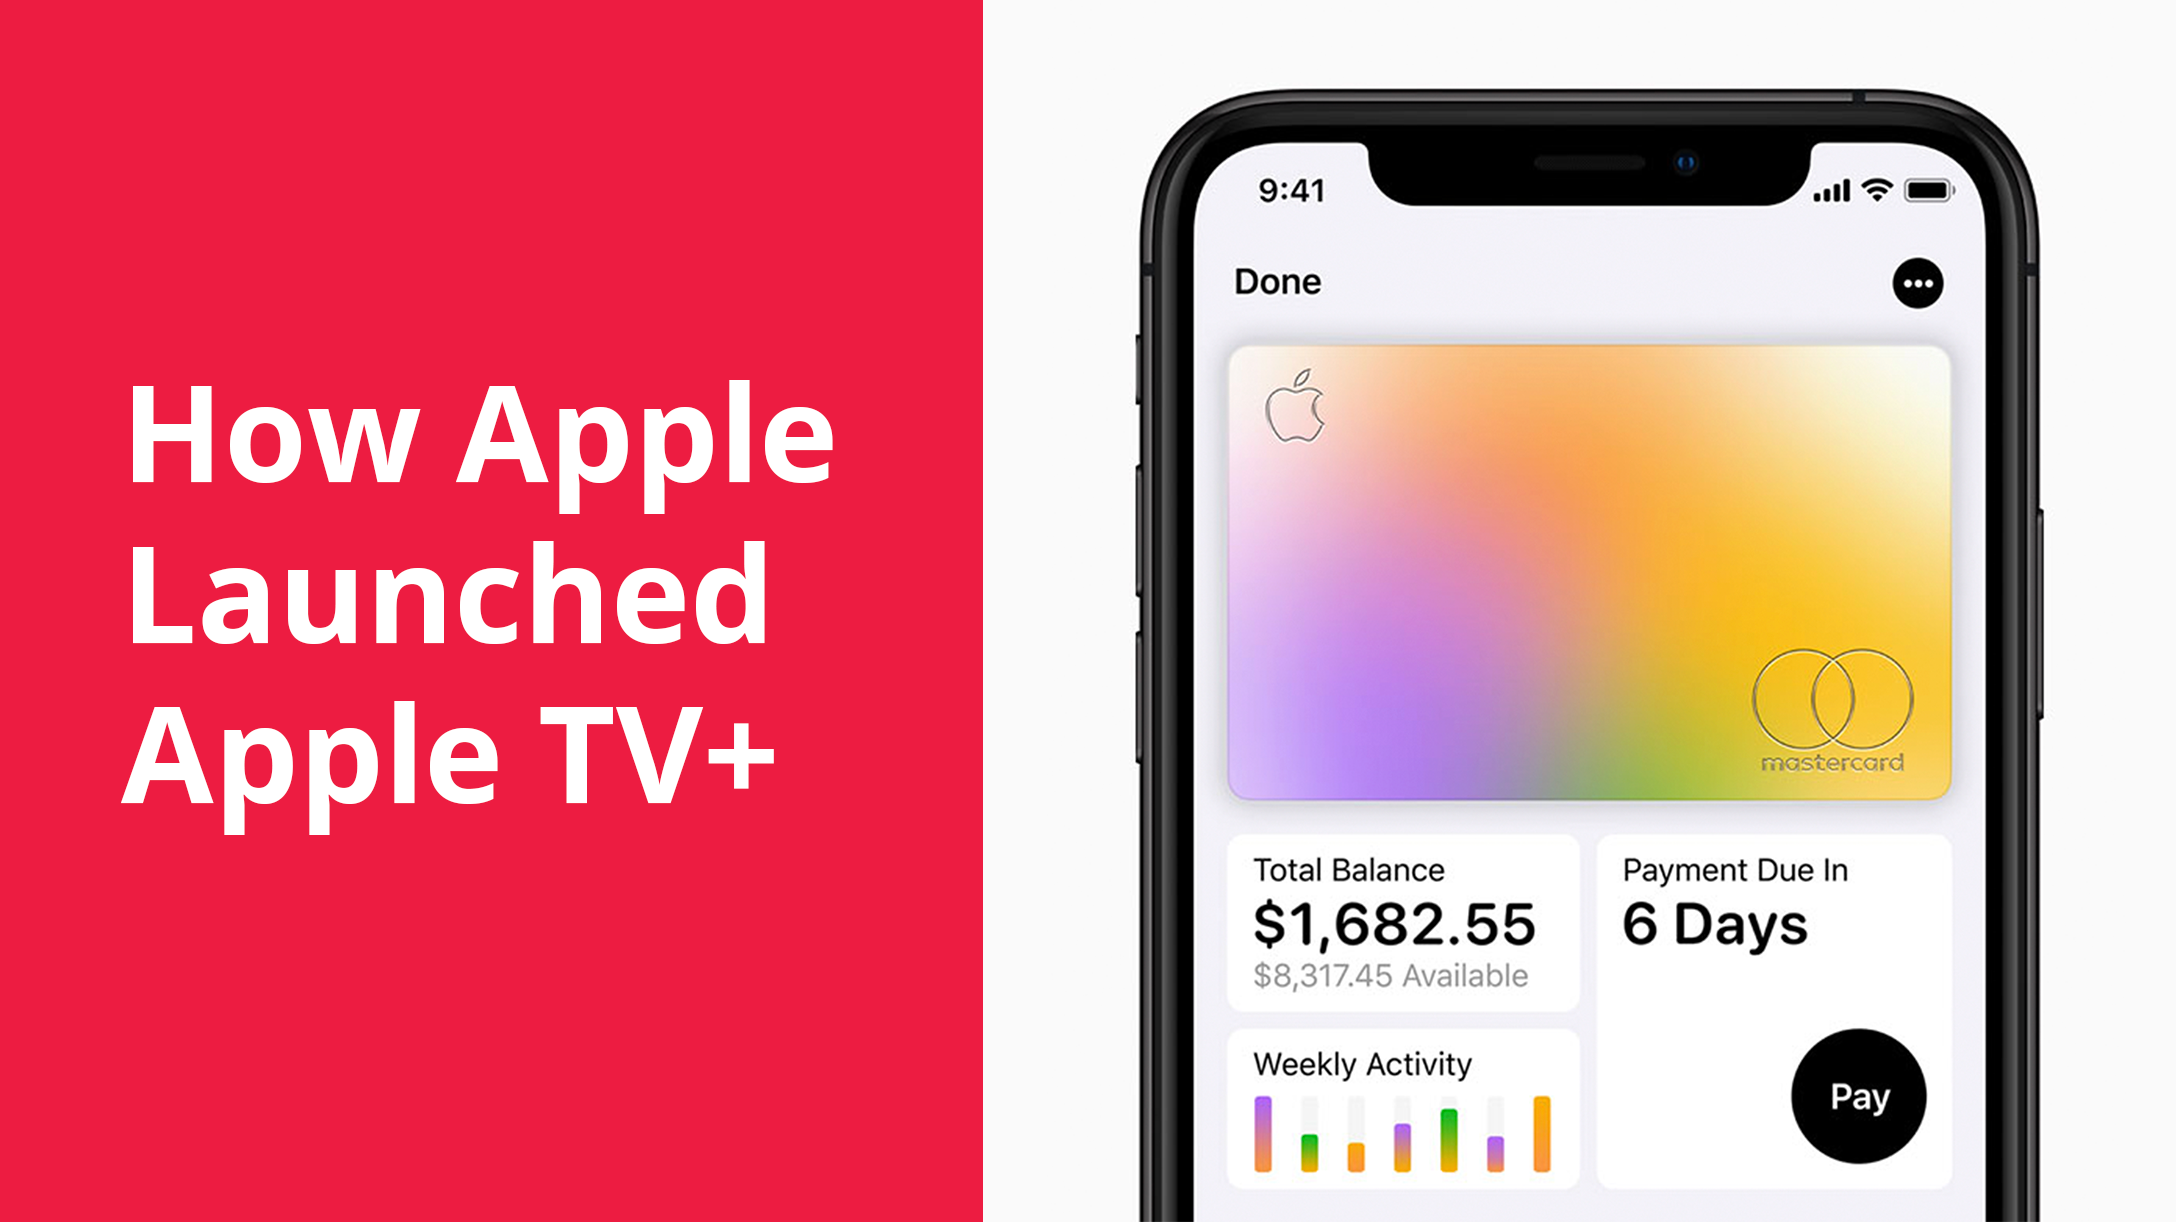 Social Marketing Snapshot: How Apple Launched  Apple TV+